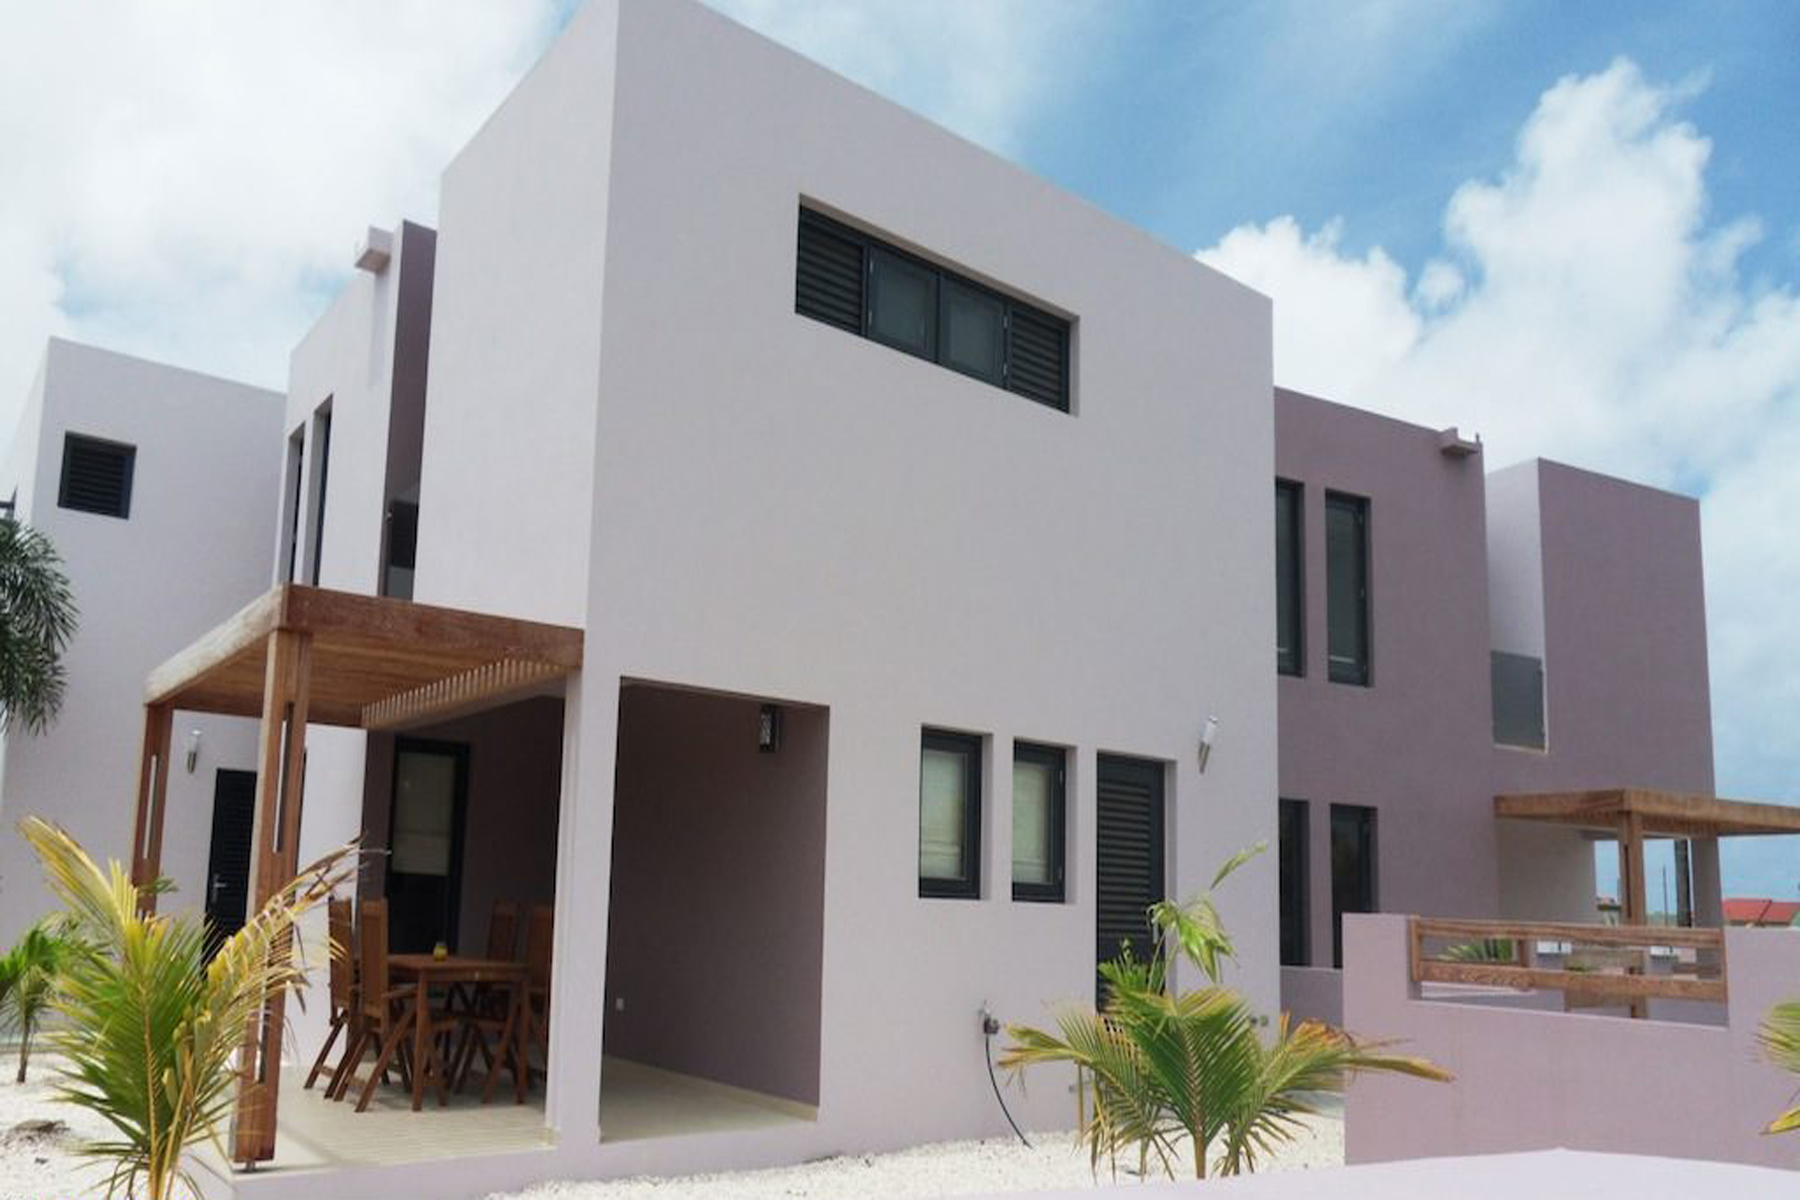 Single Family Home for Sale at Villa Saturnus Belnem, Bonaire